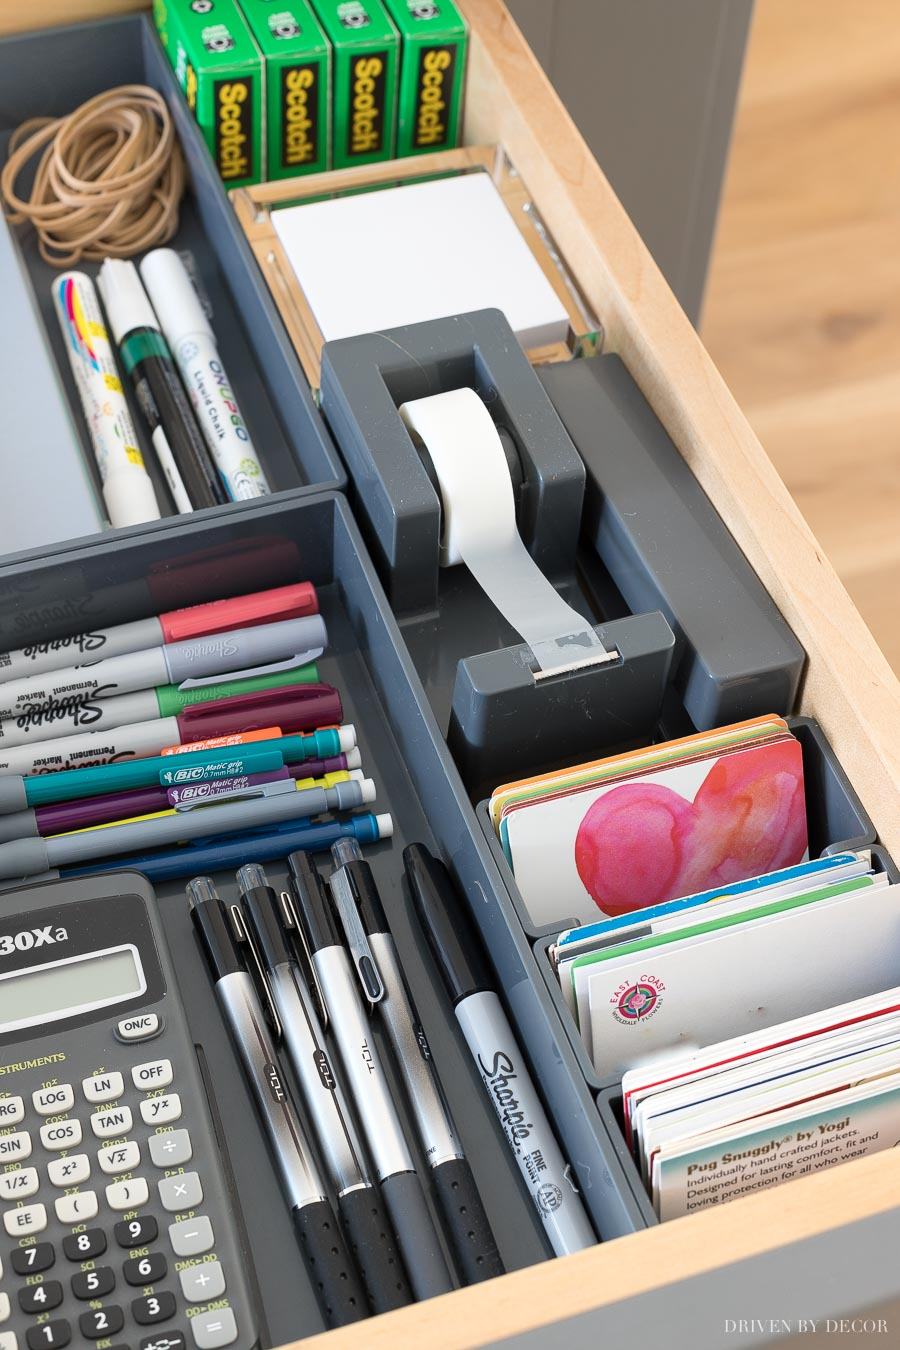 A kitchen command center in a hidden drawer holding tape, stapler, and all sorts of other essentials!